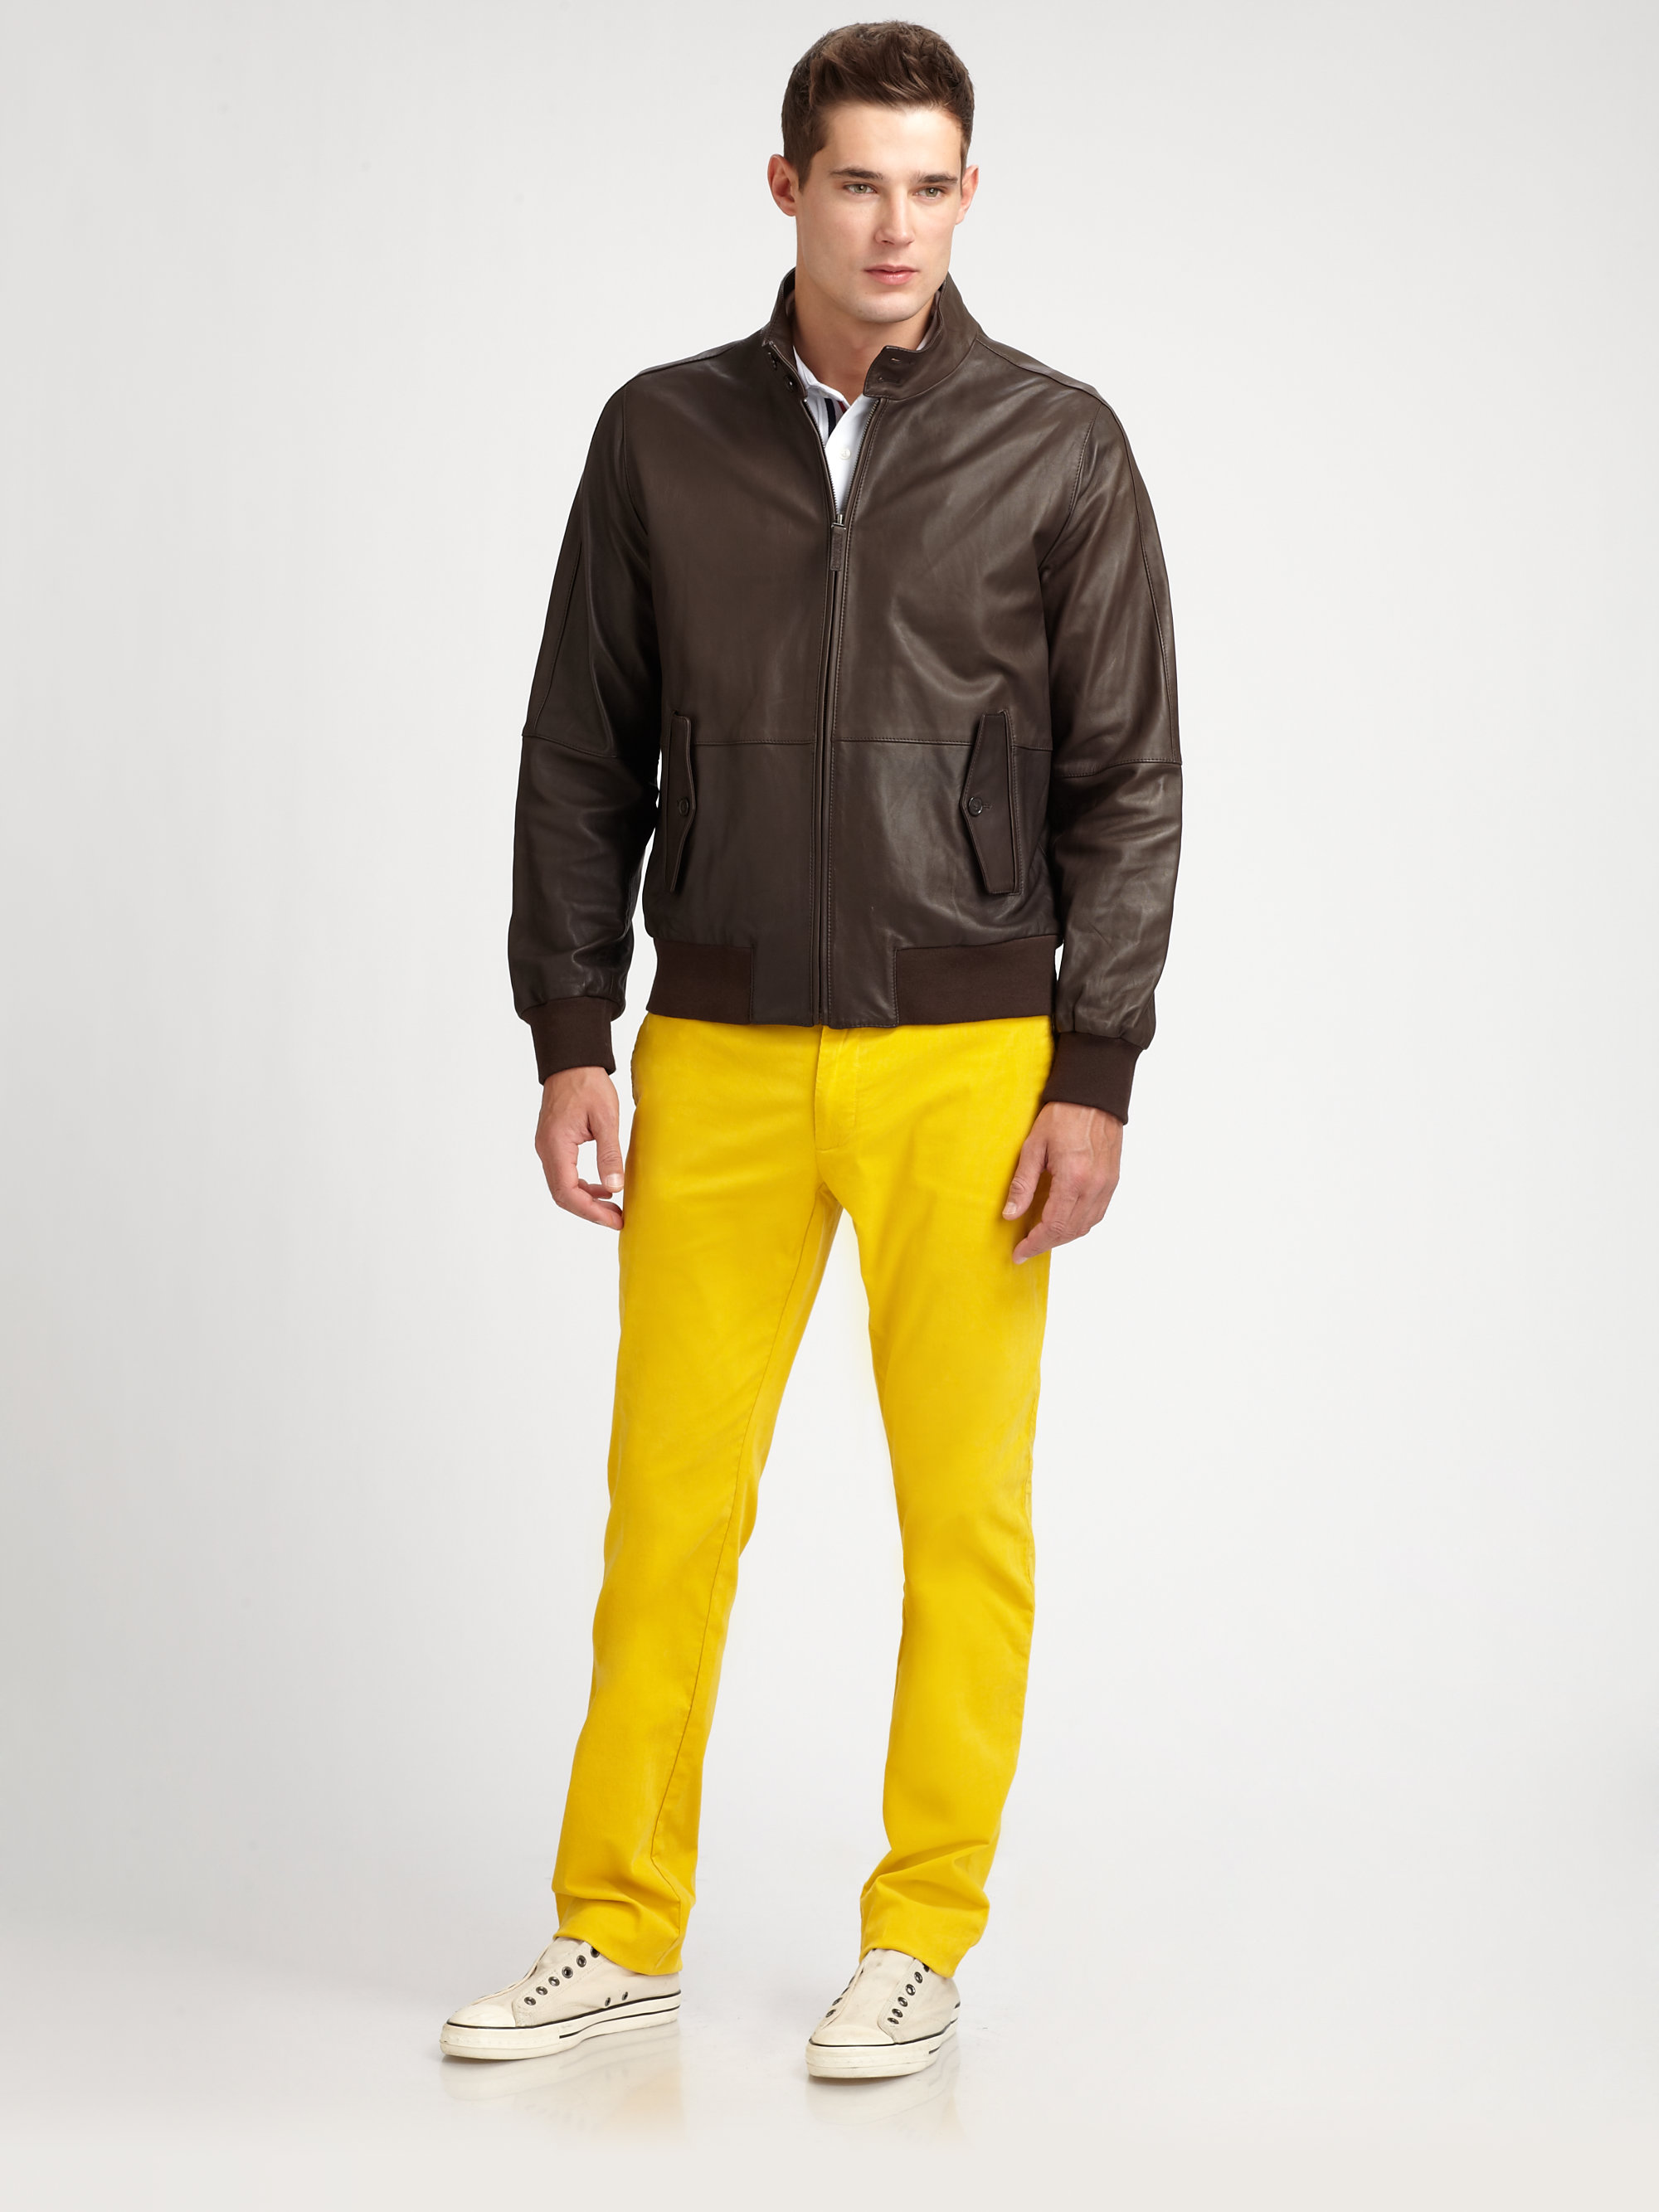 Façonnable Leather Bomber Jacket in Brown for Men | Lyst